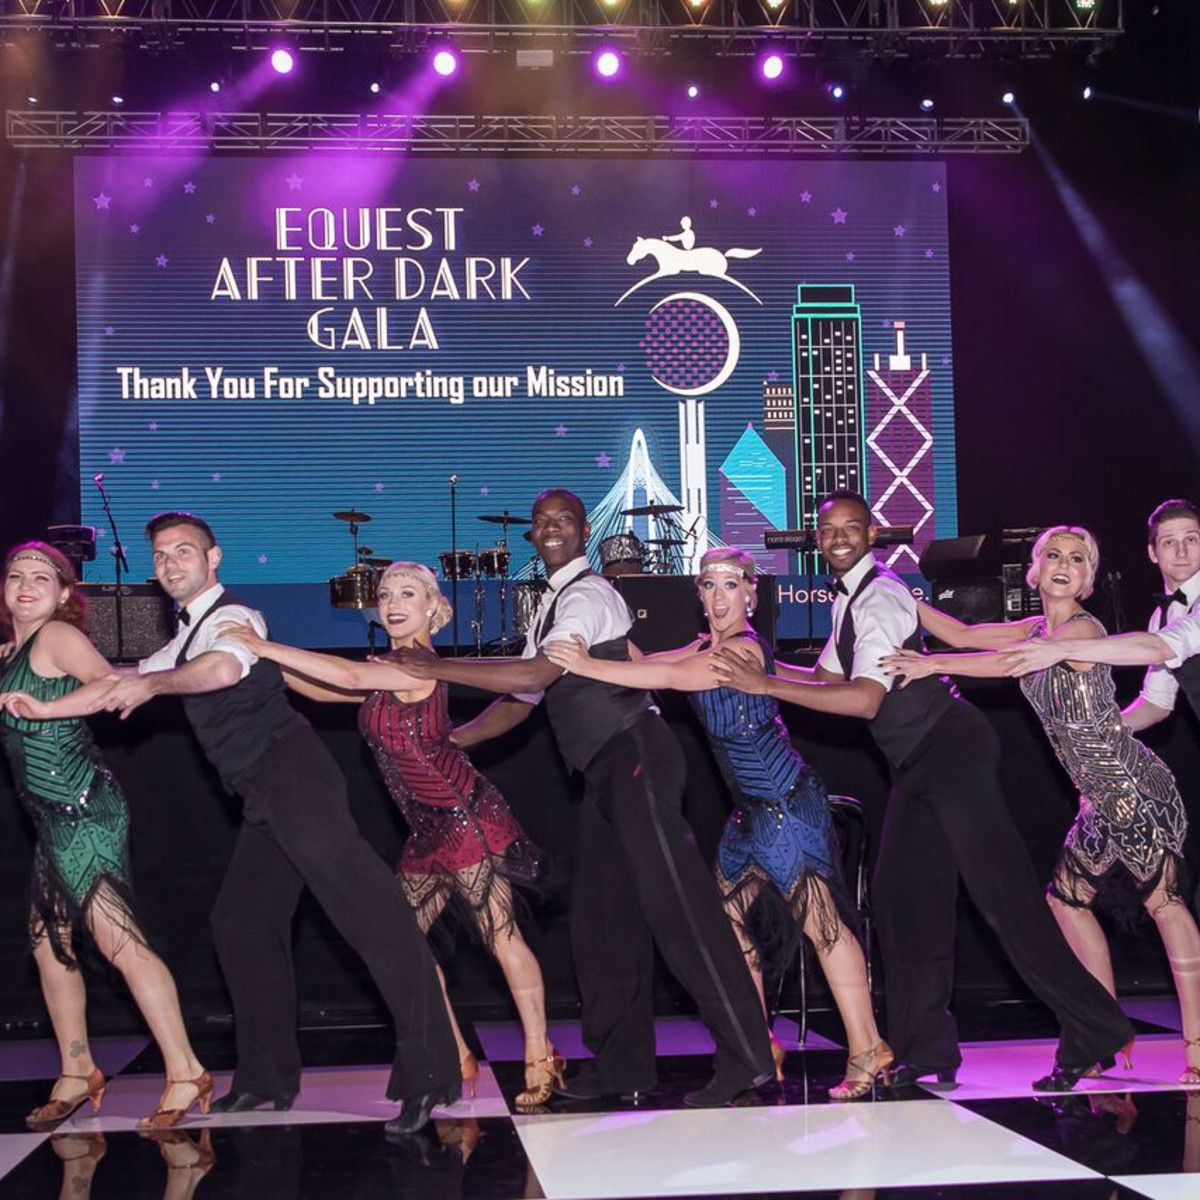 Equest After Dark Gala 2018,Arthur Murray Dancers